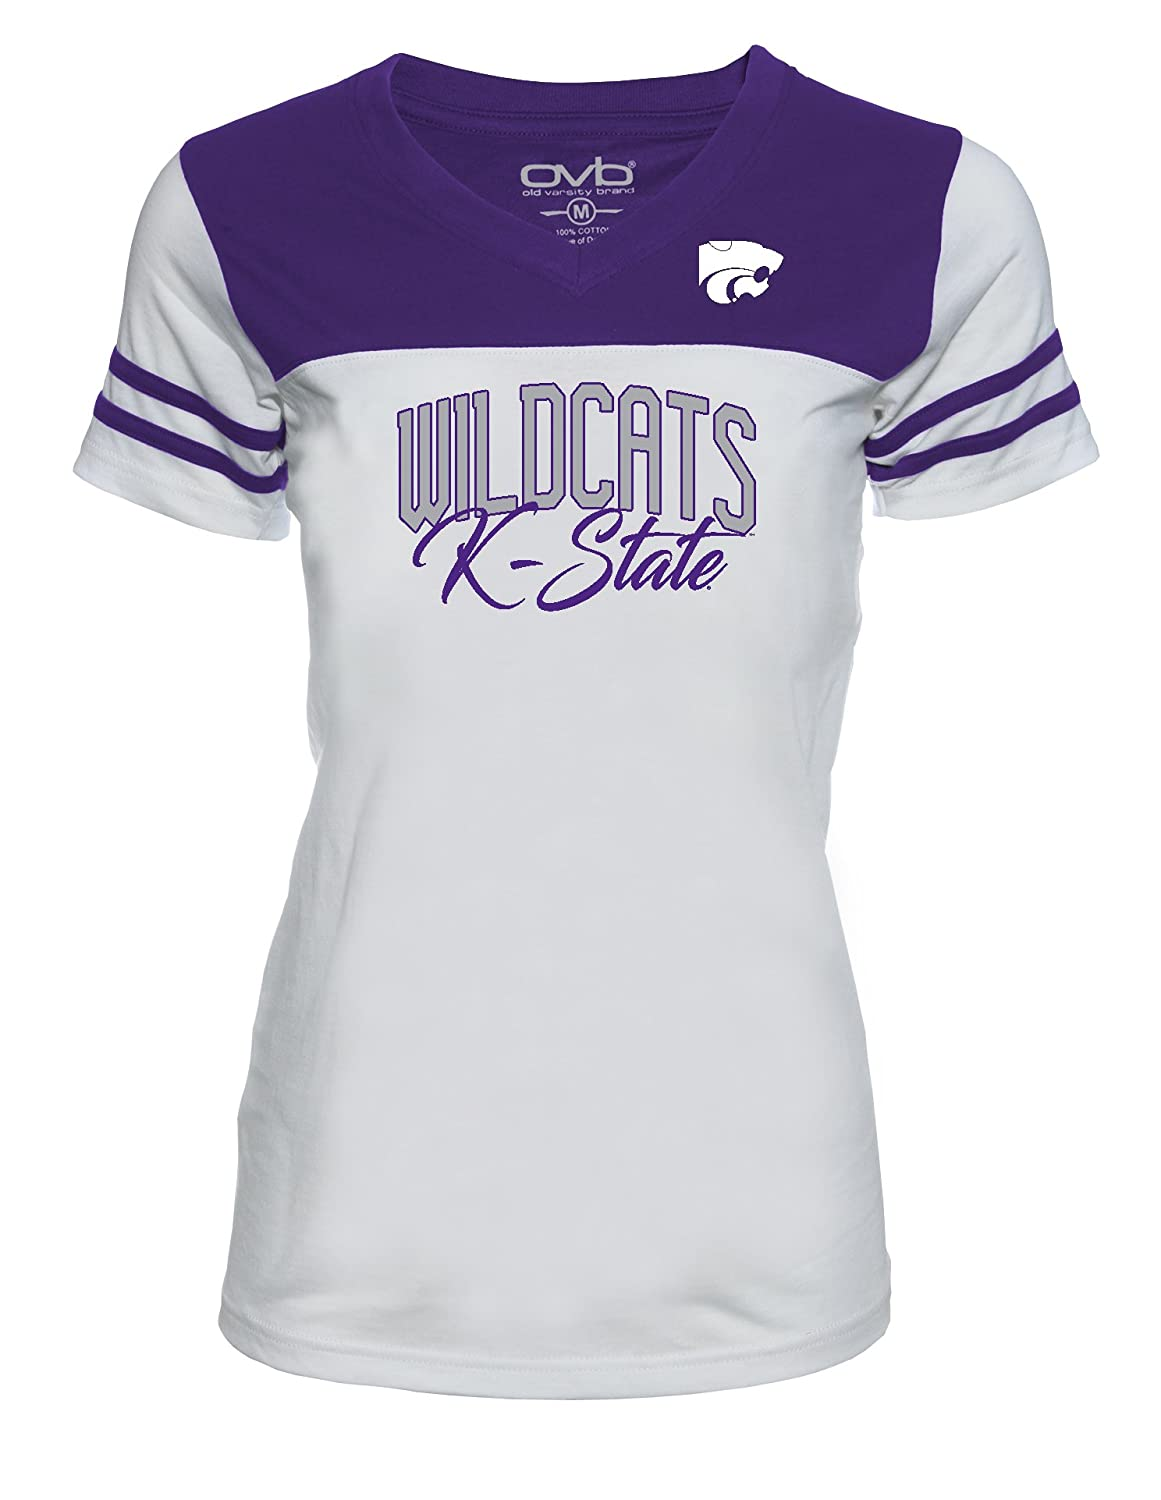 Old Varsity Brand NCAA Kansas State Wildcats Womens JRS Football T-Shirt Small White//Purple